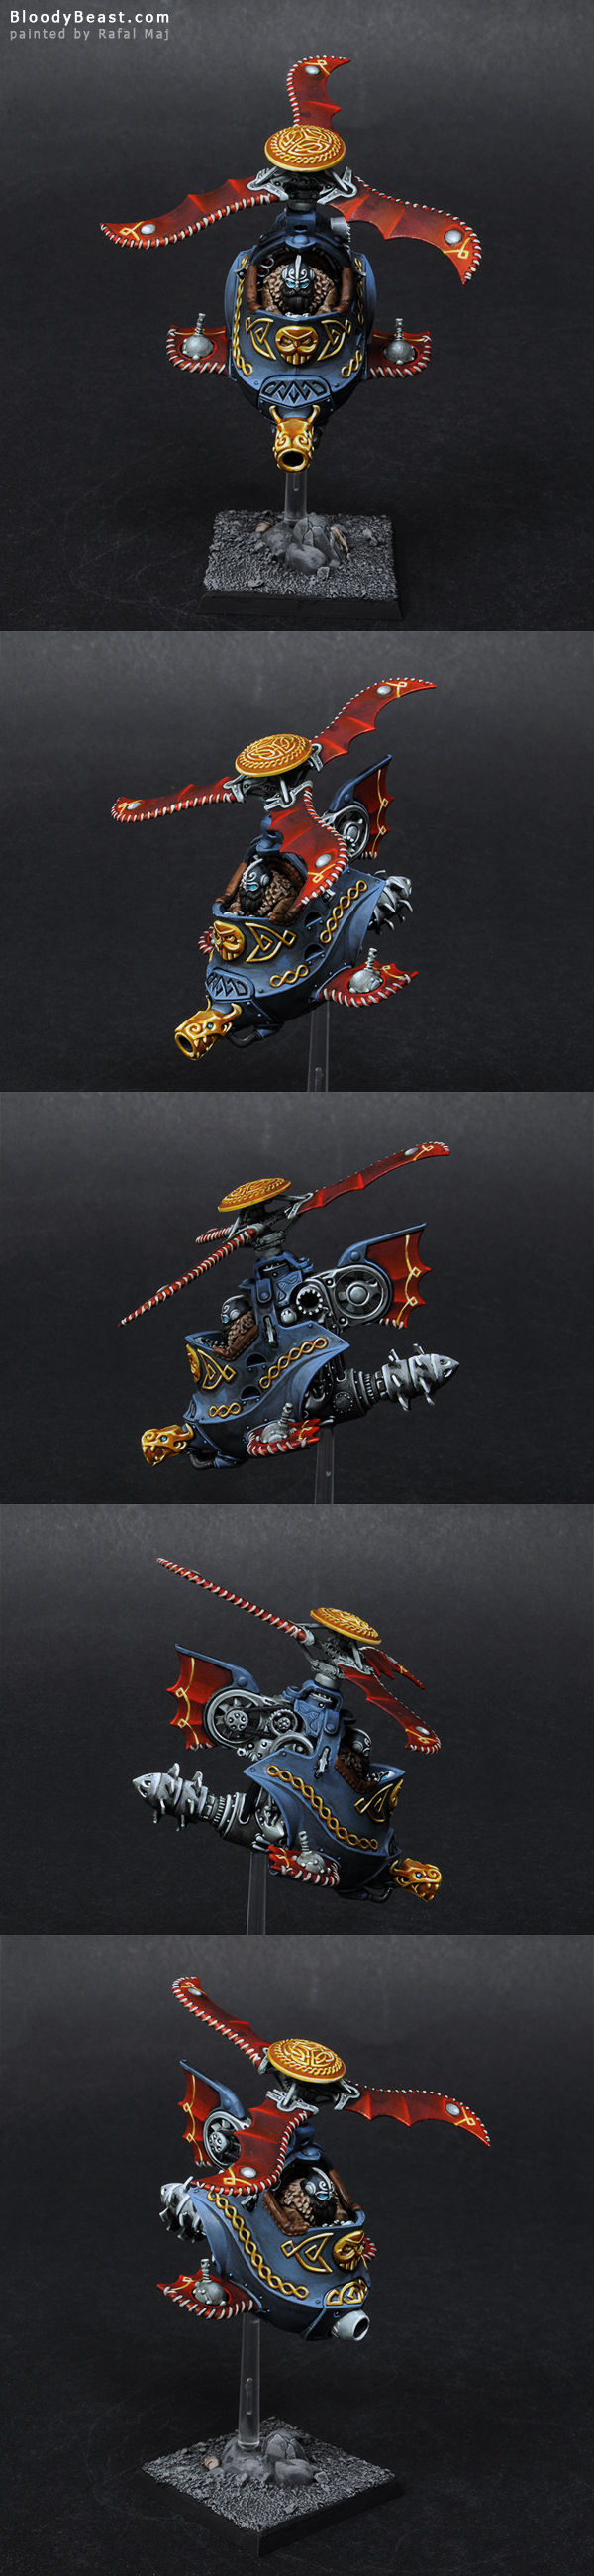 Dwarf Gyrocopter painted by Rafal Maj (BloodyBeast.com)